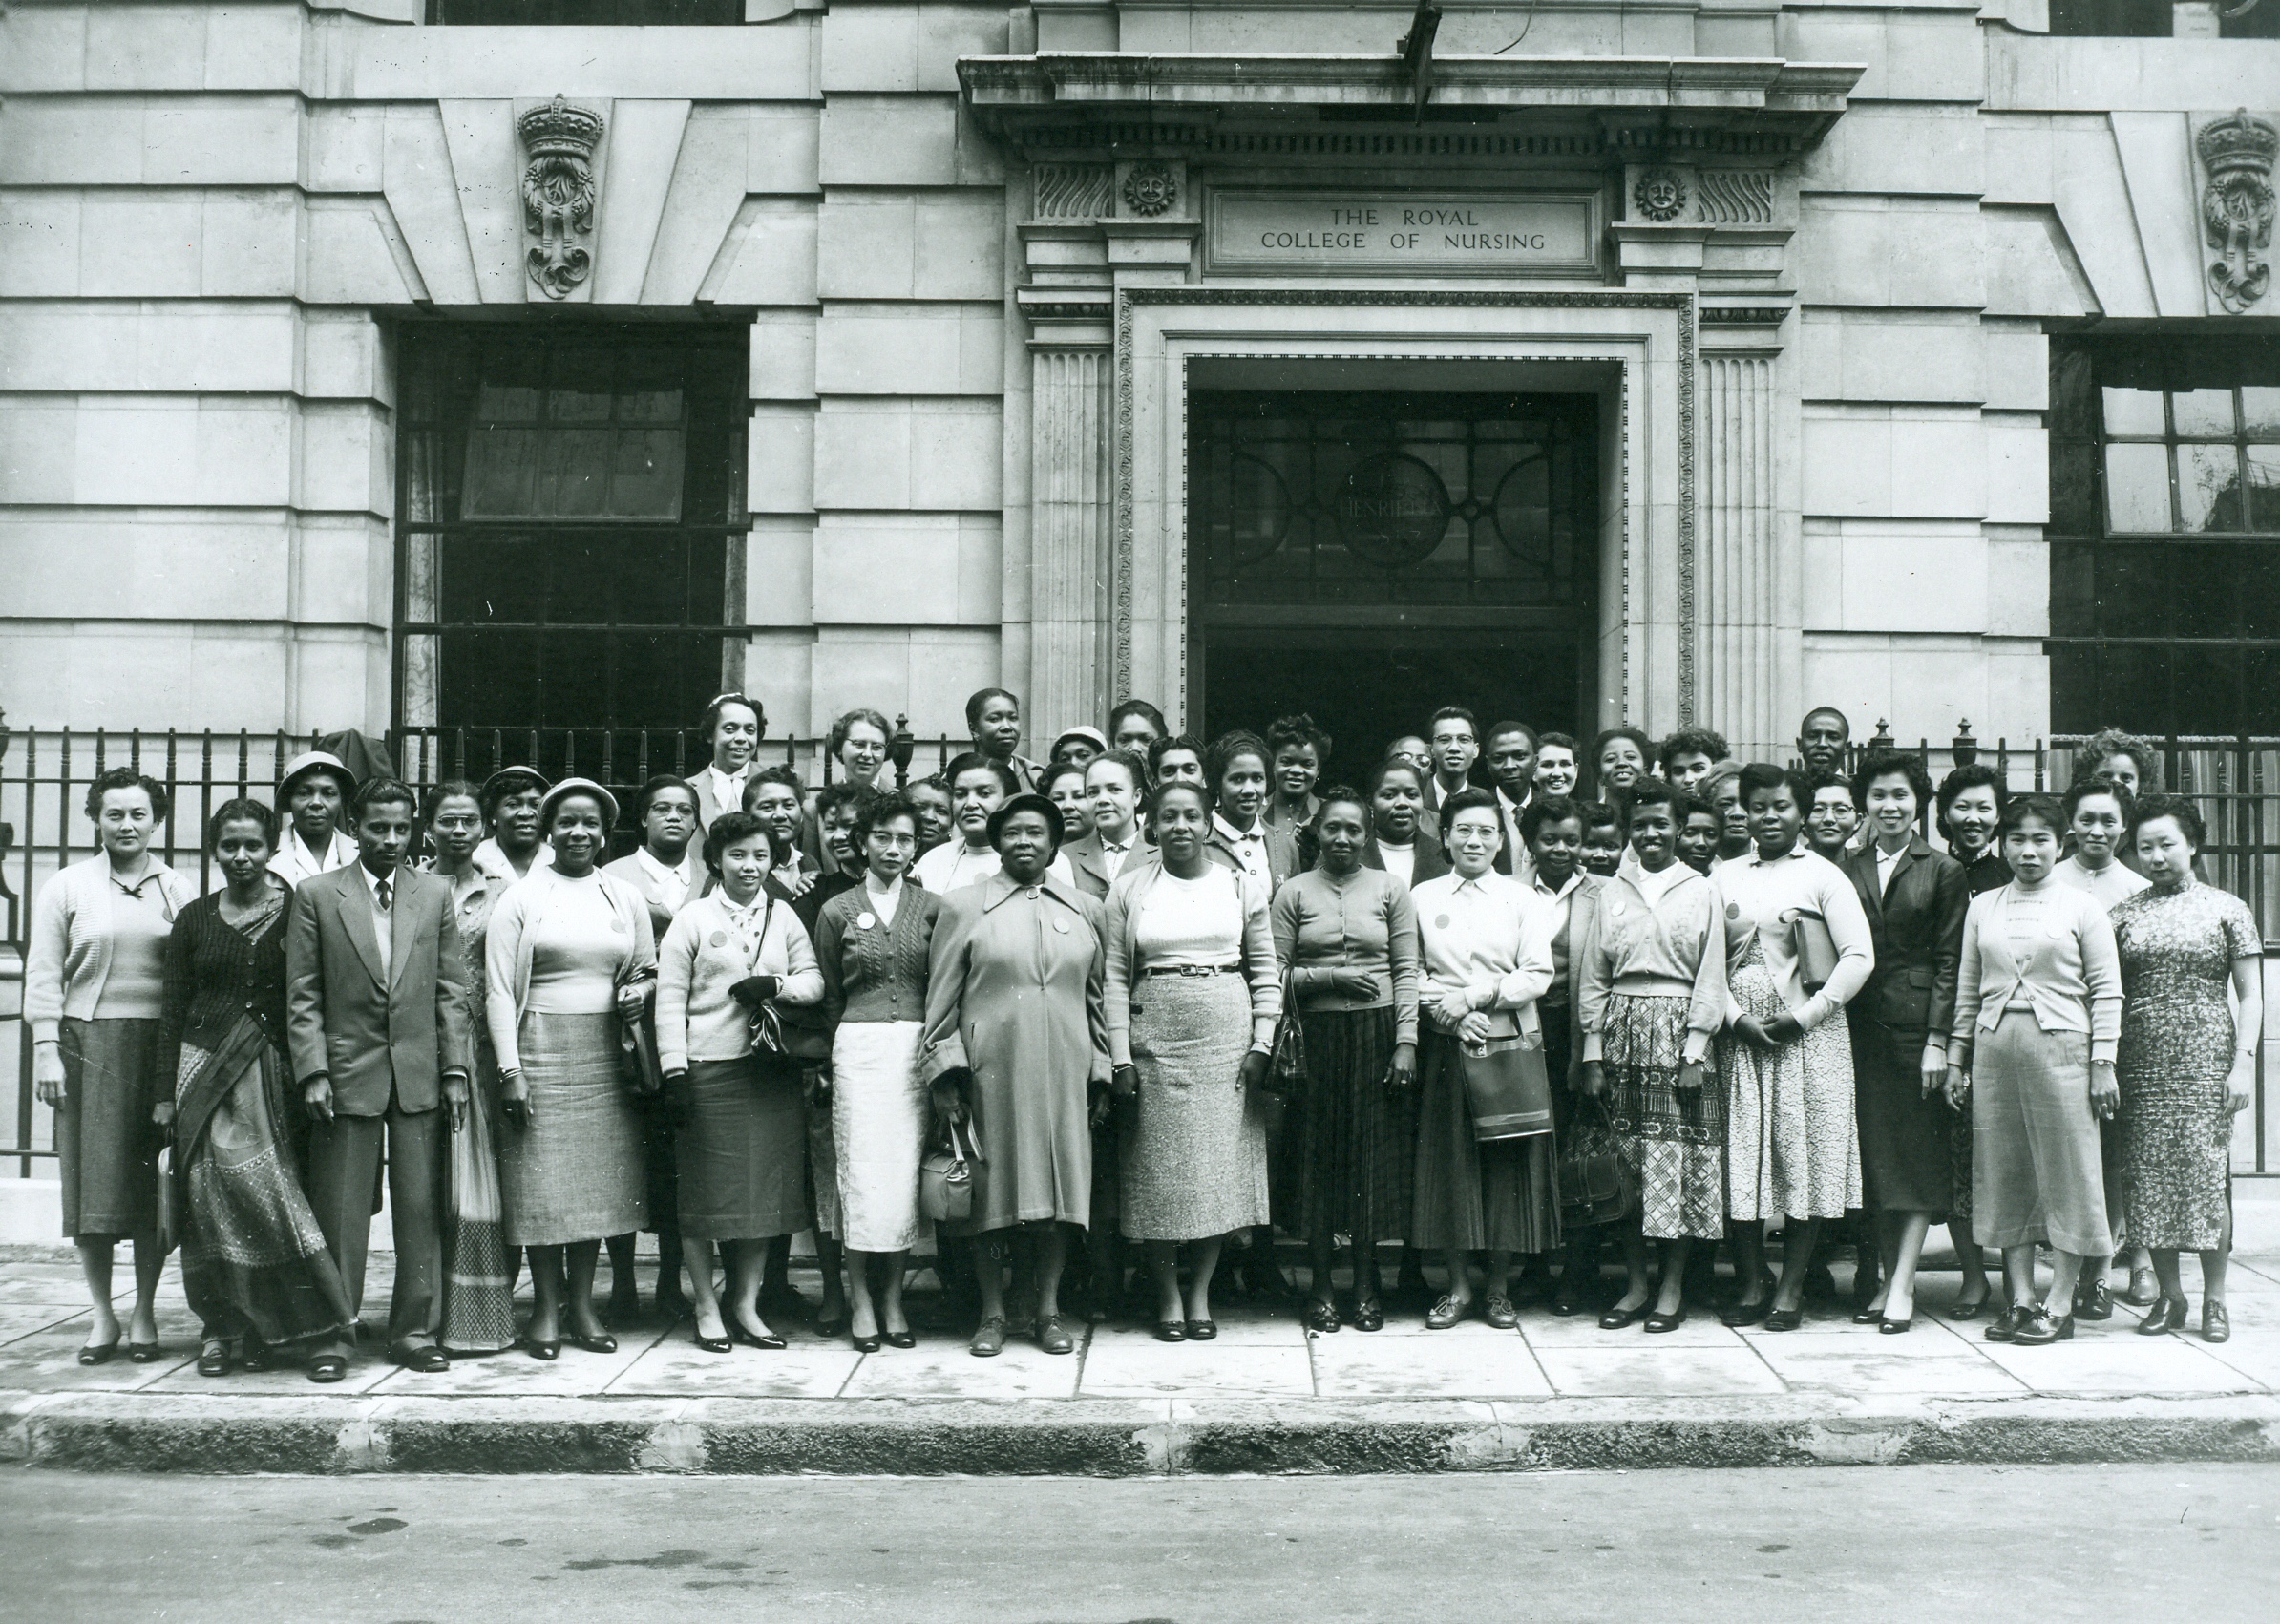 International School Students photographed outside the entrance to the Royal College of Nursing in 1957.